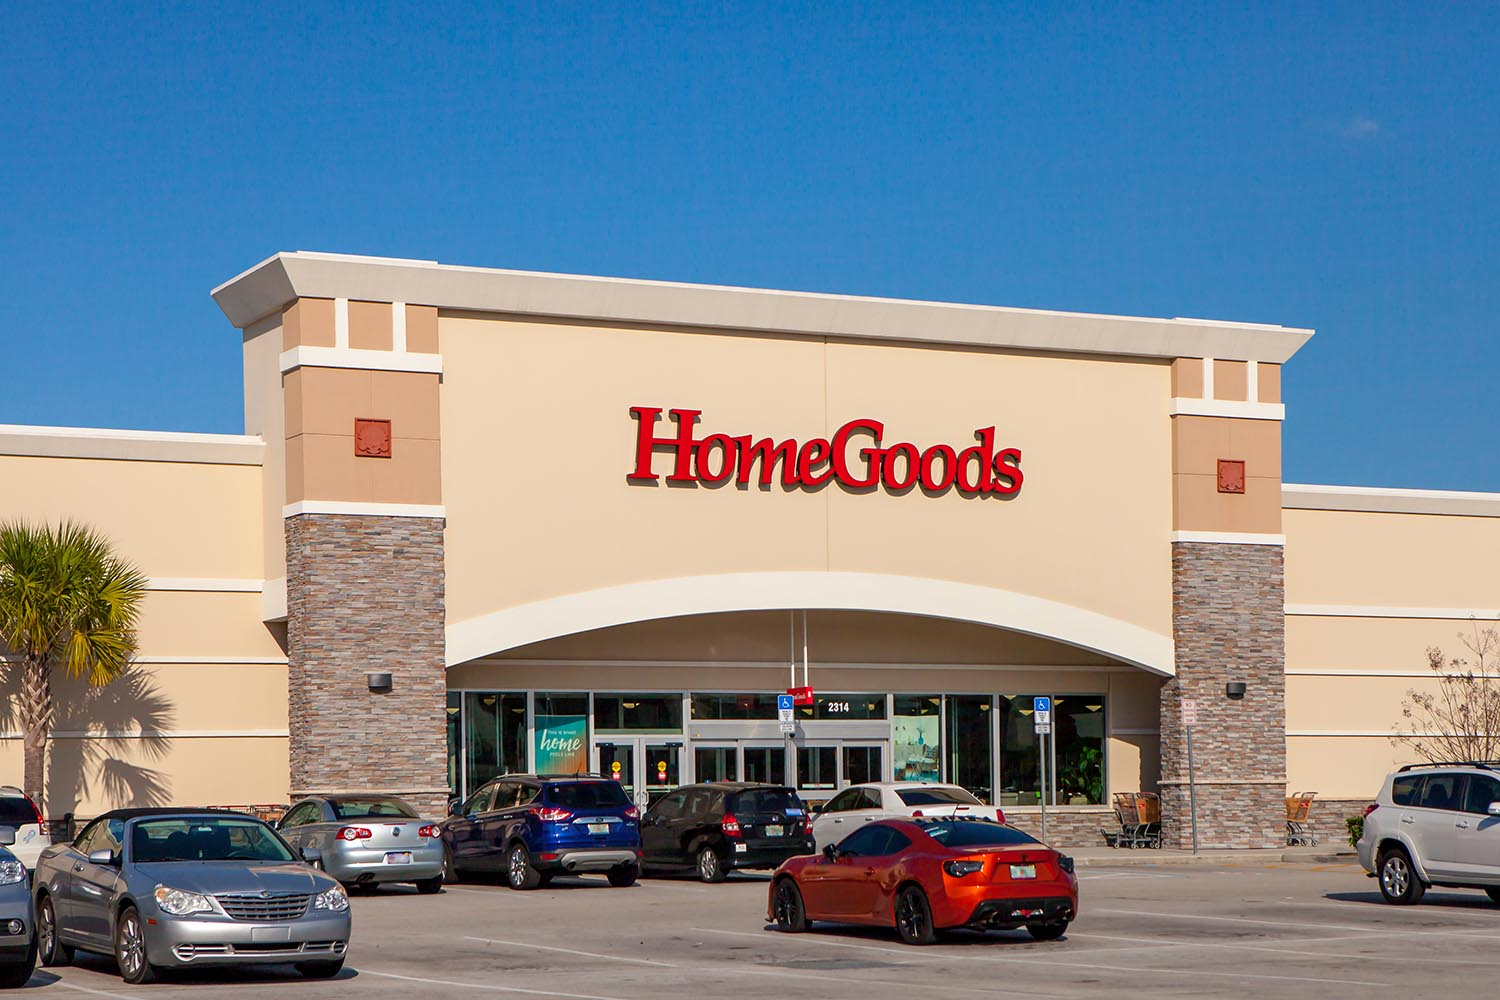 HomeGoods located in Viera